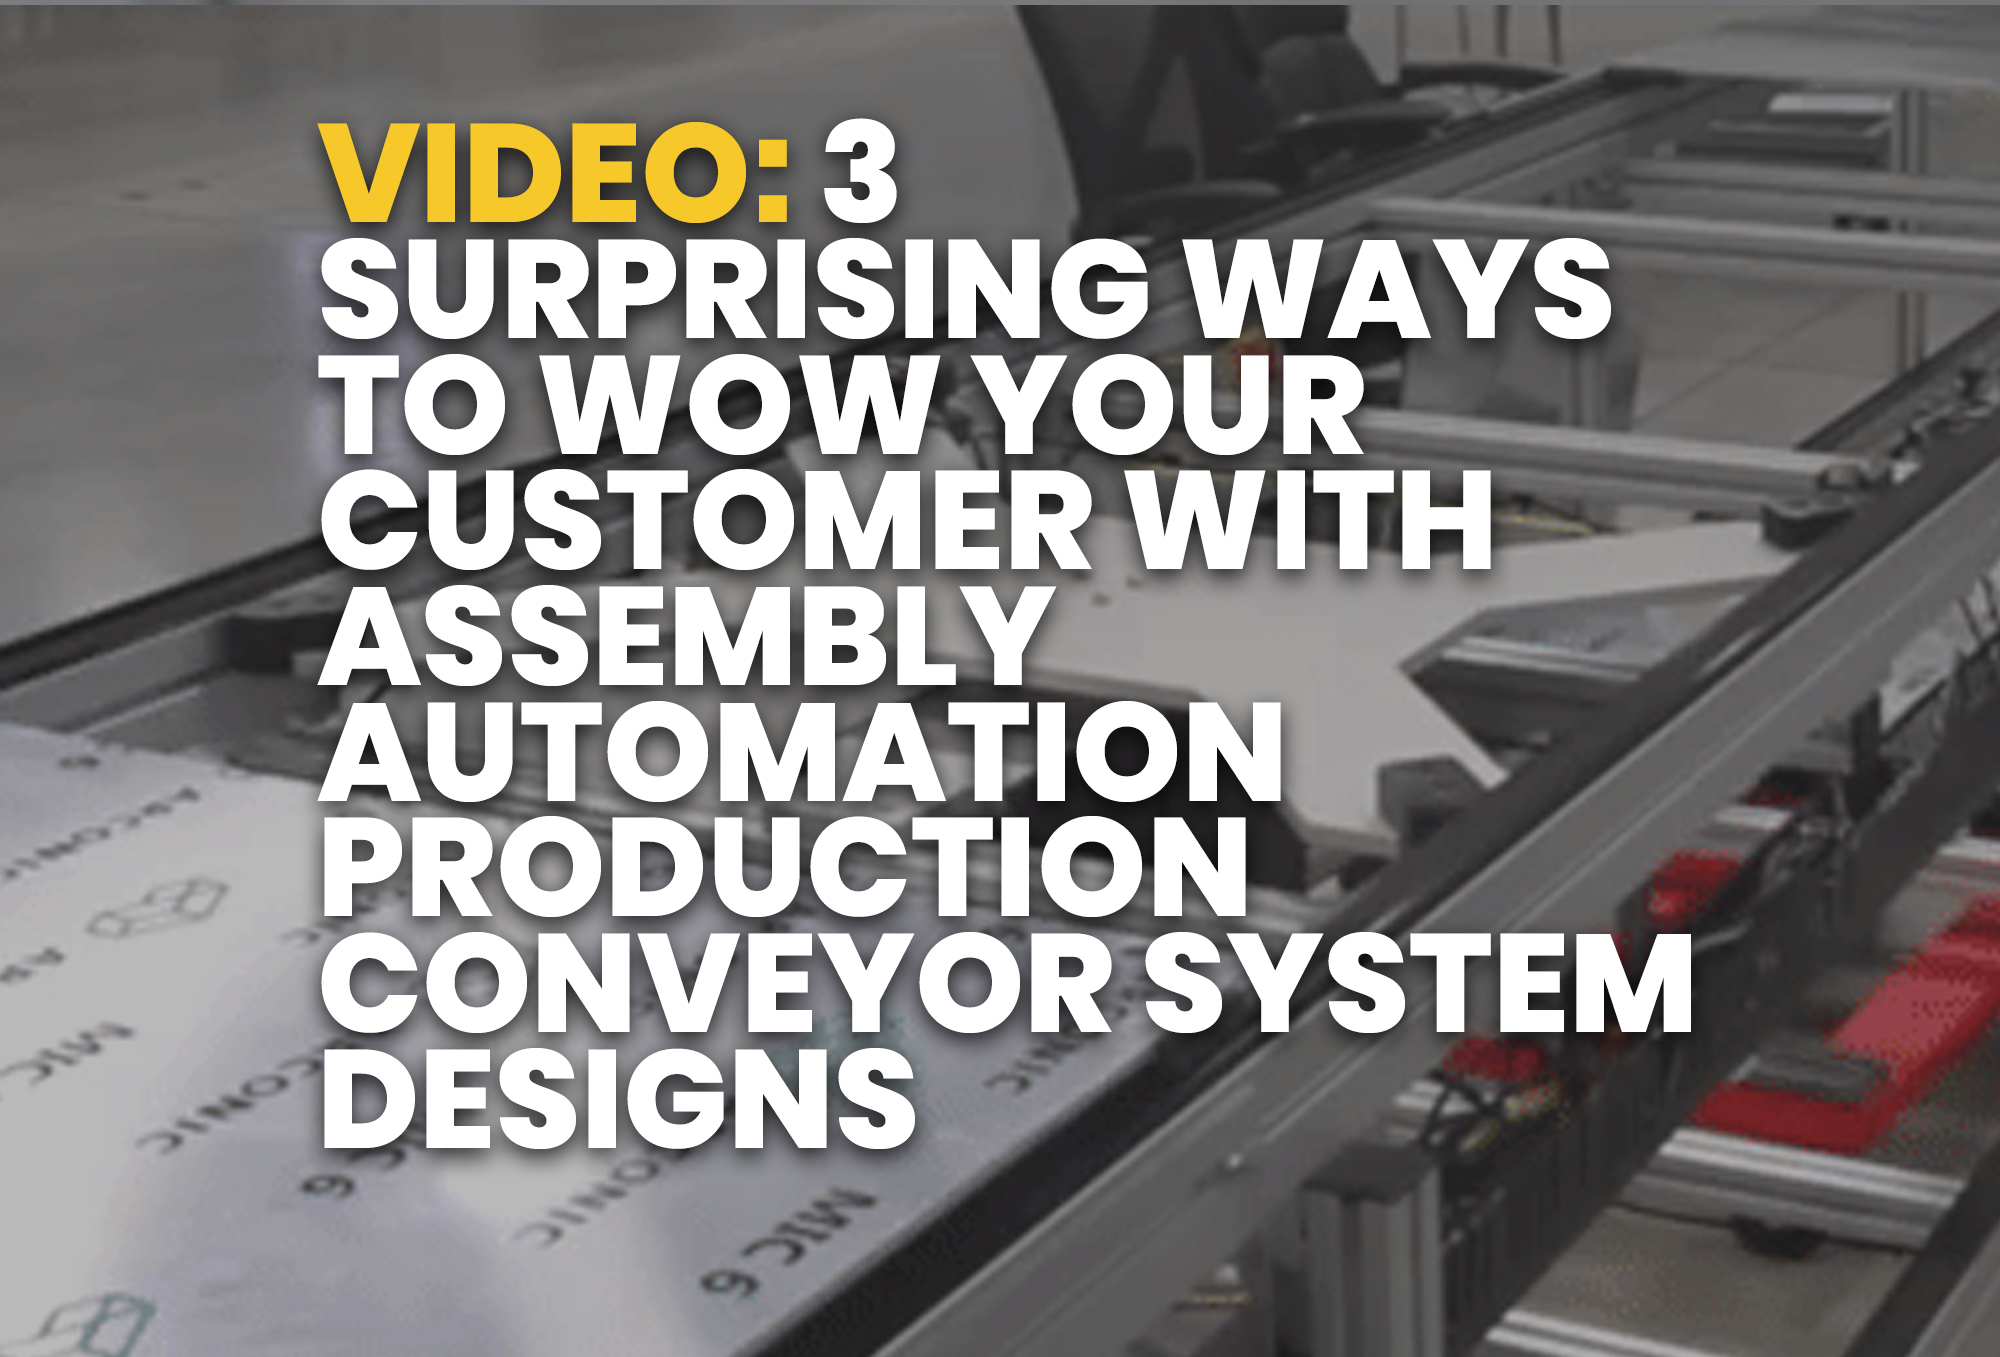 3 Surprising Ways to WOW Your Customer with Assembly Automation Production Conveyor System Designs - Resource